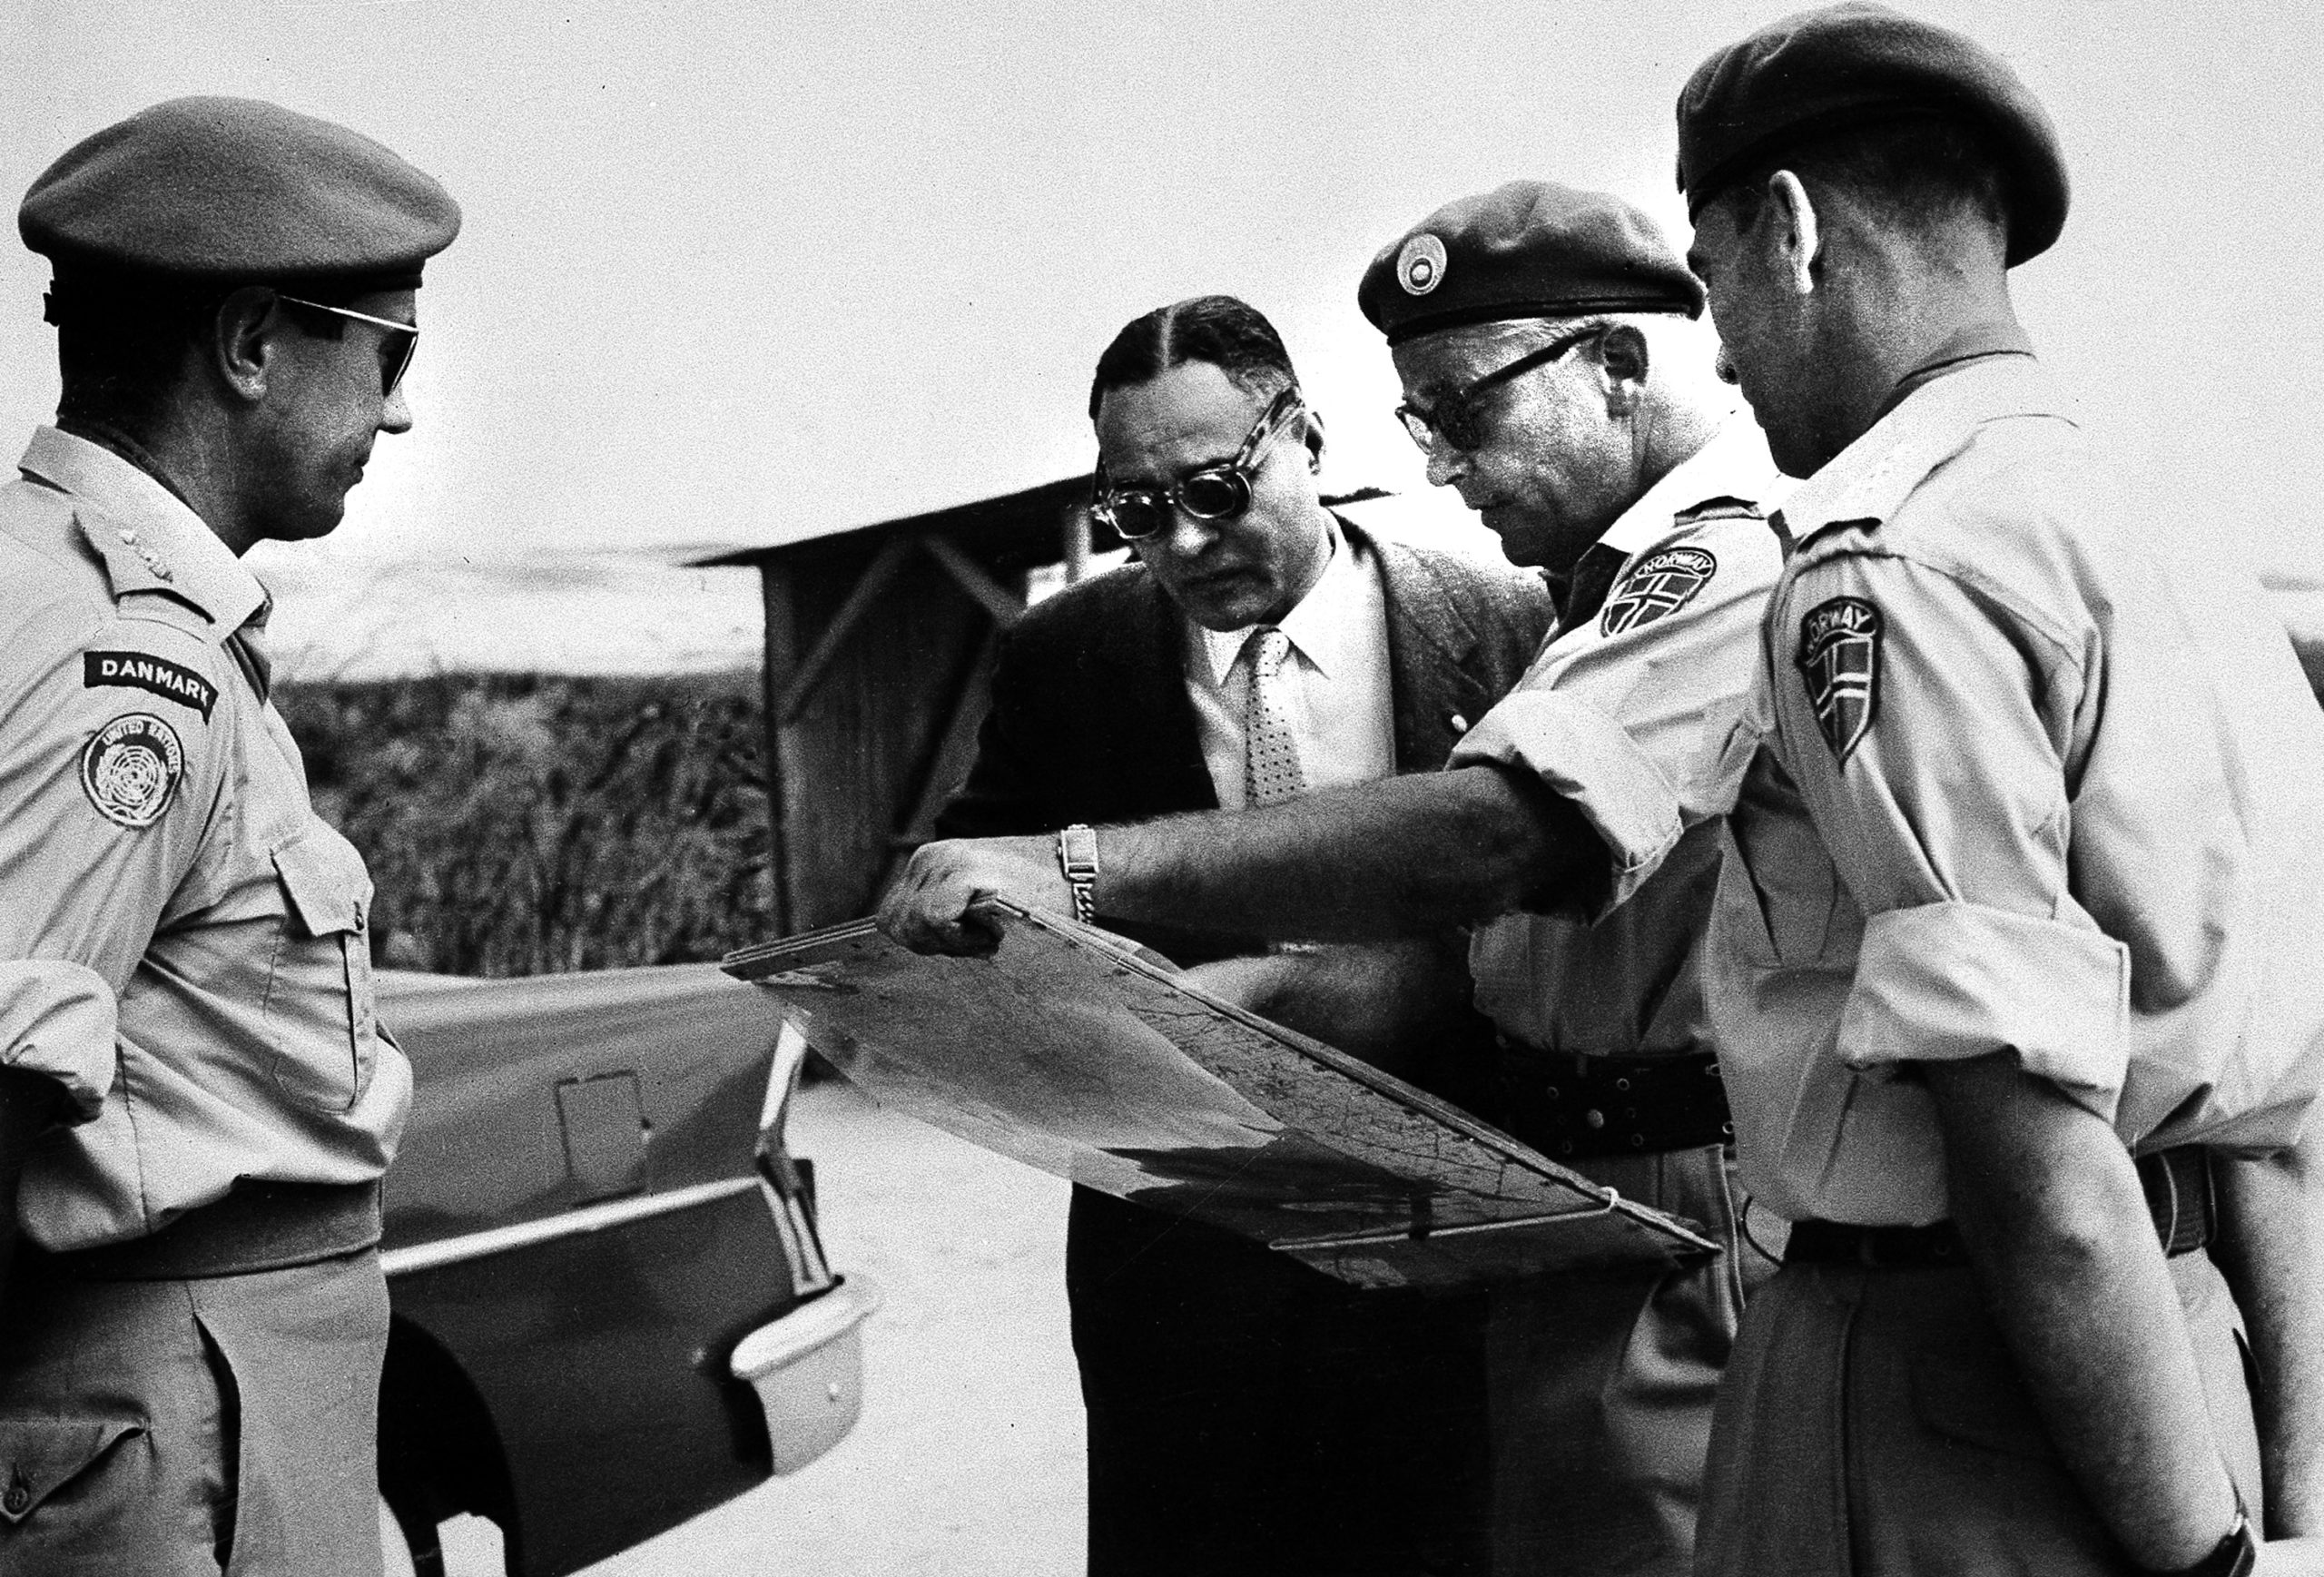 Ralph Bunche with Norwegian officers while visiting a UN Emergency Force observation post.